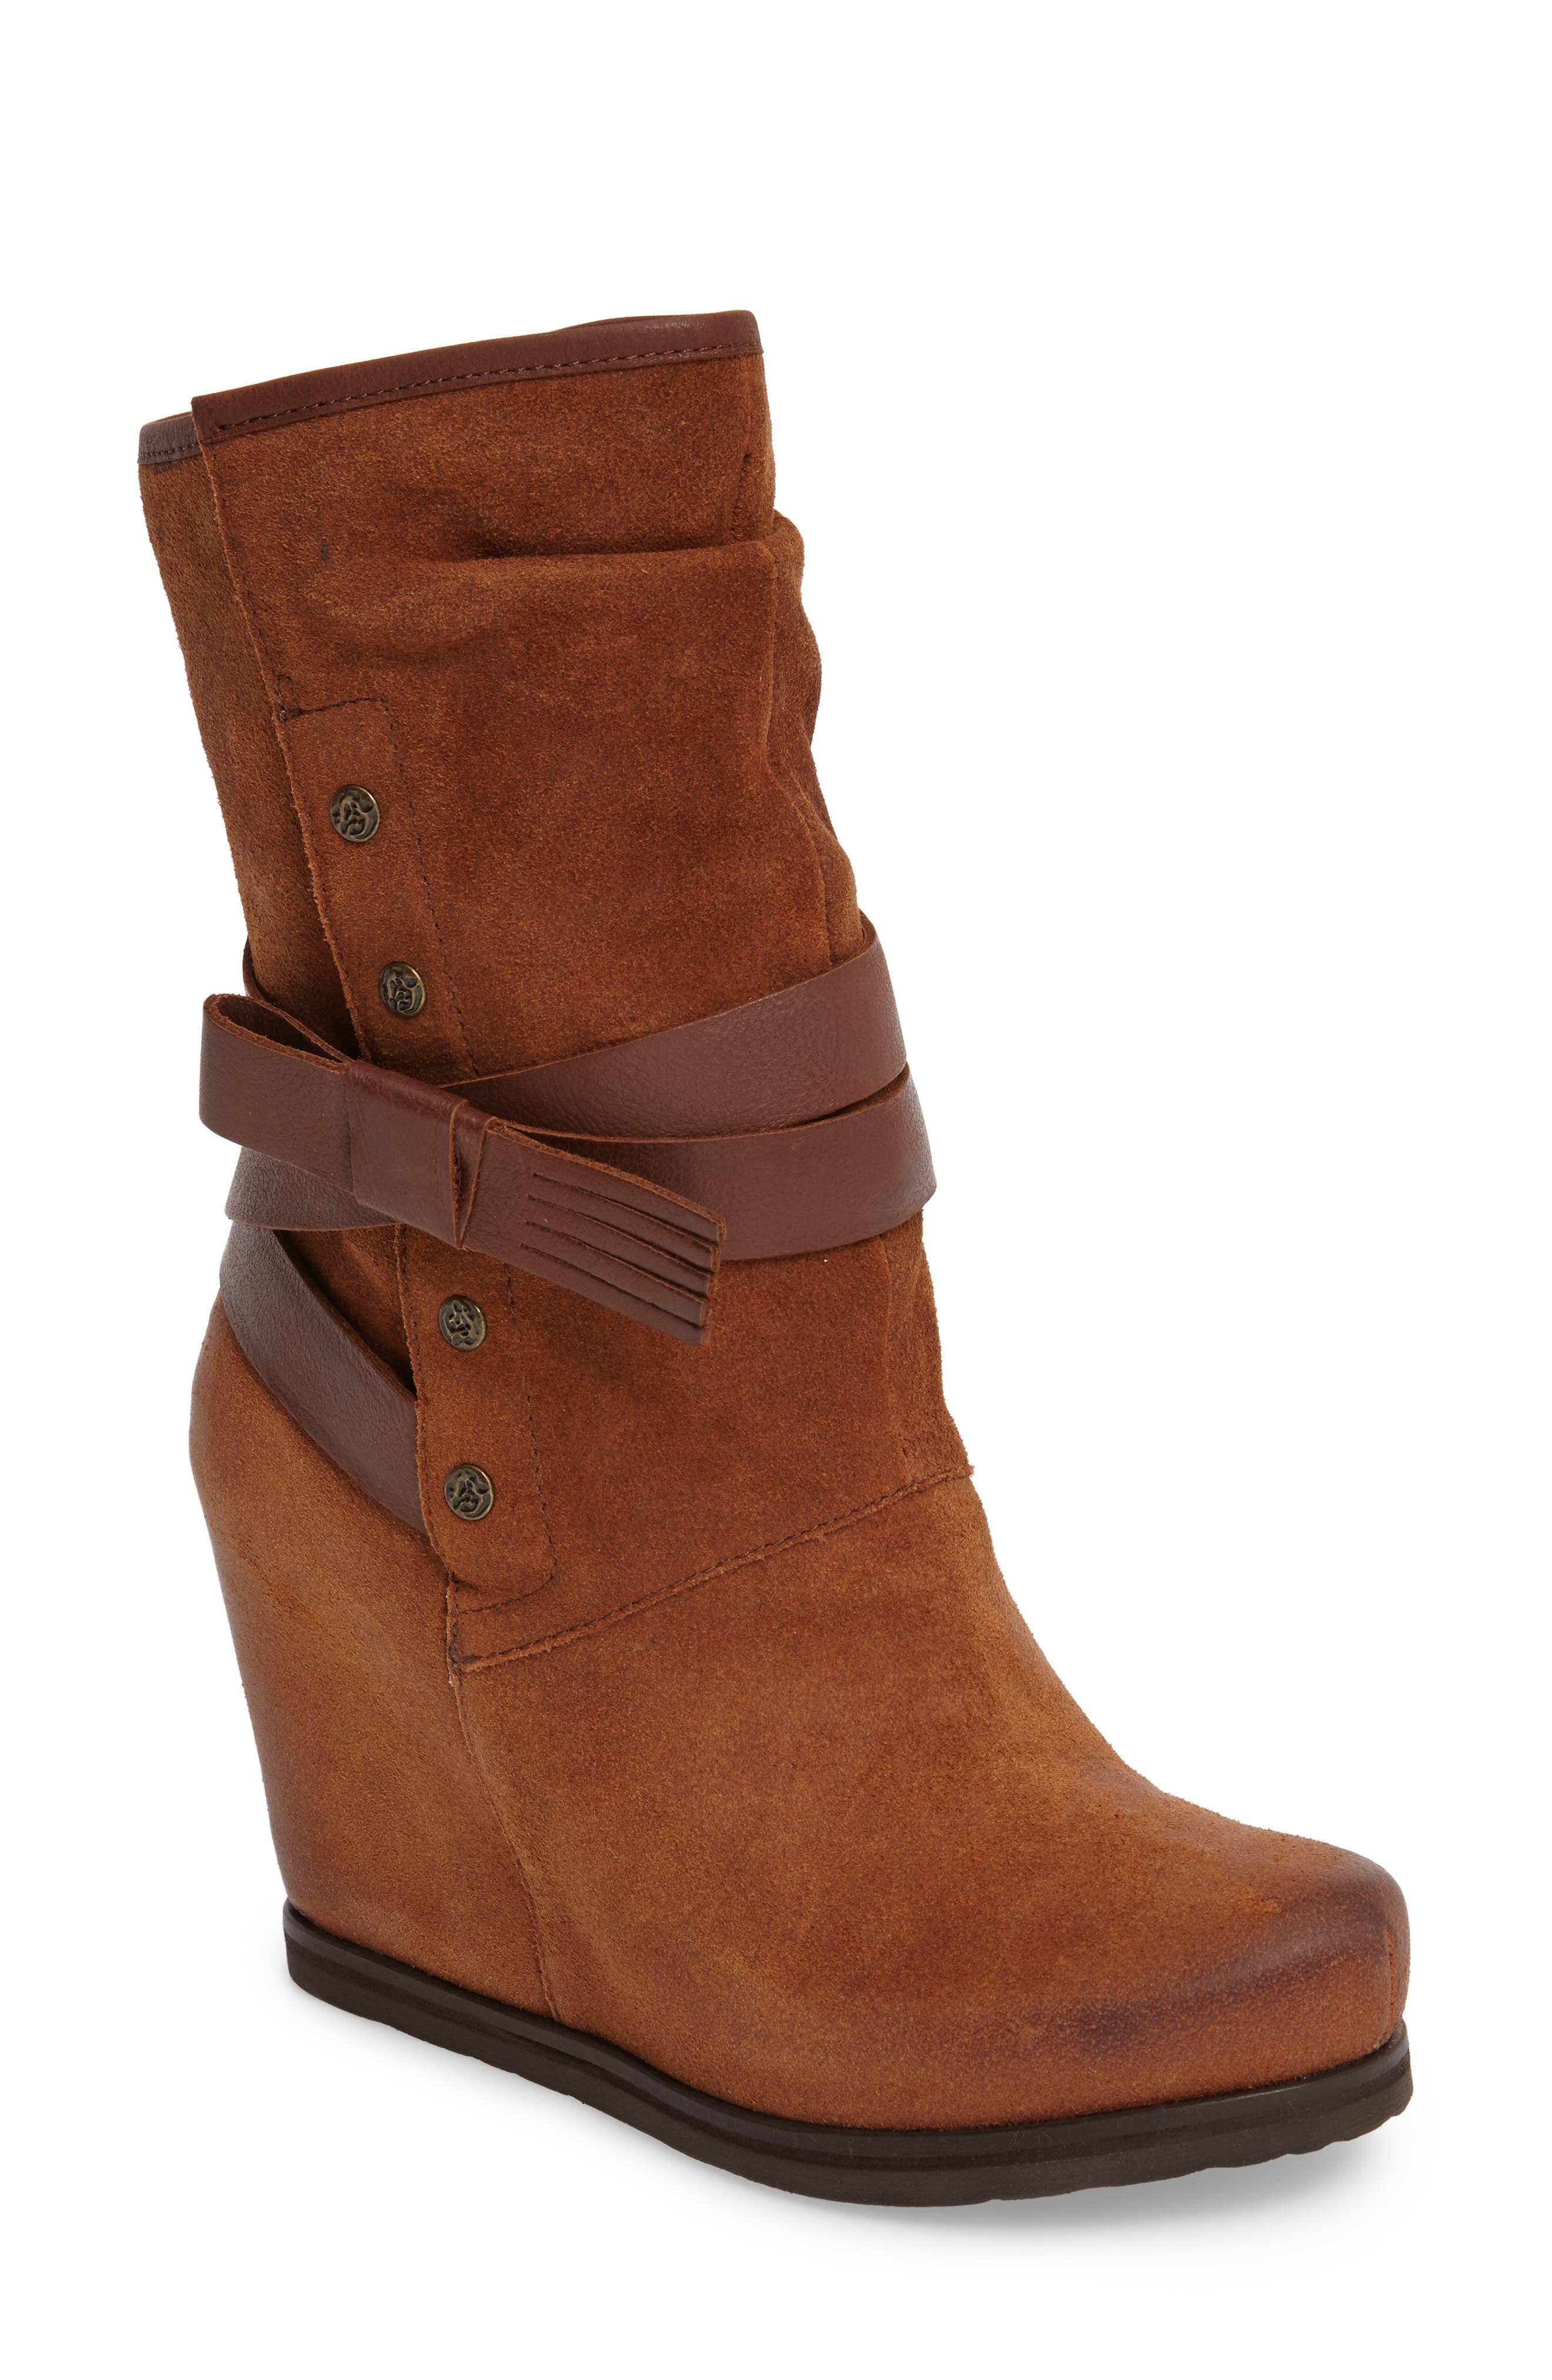 Alternate Image 1 Selected - OTBT Chakra Wedge Boot (Women)